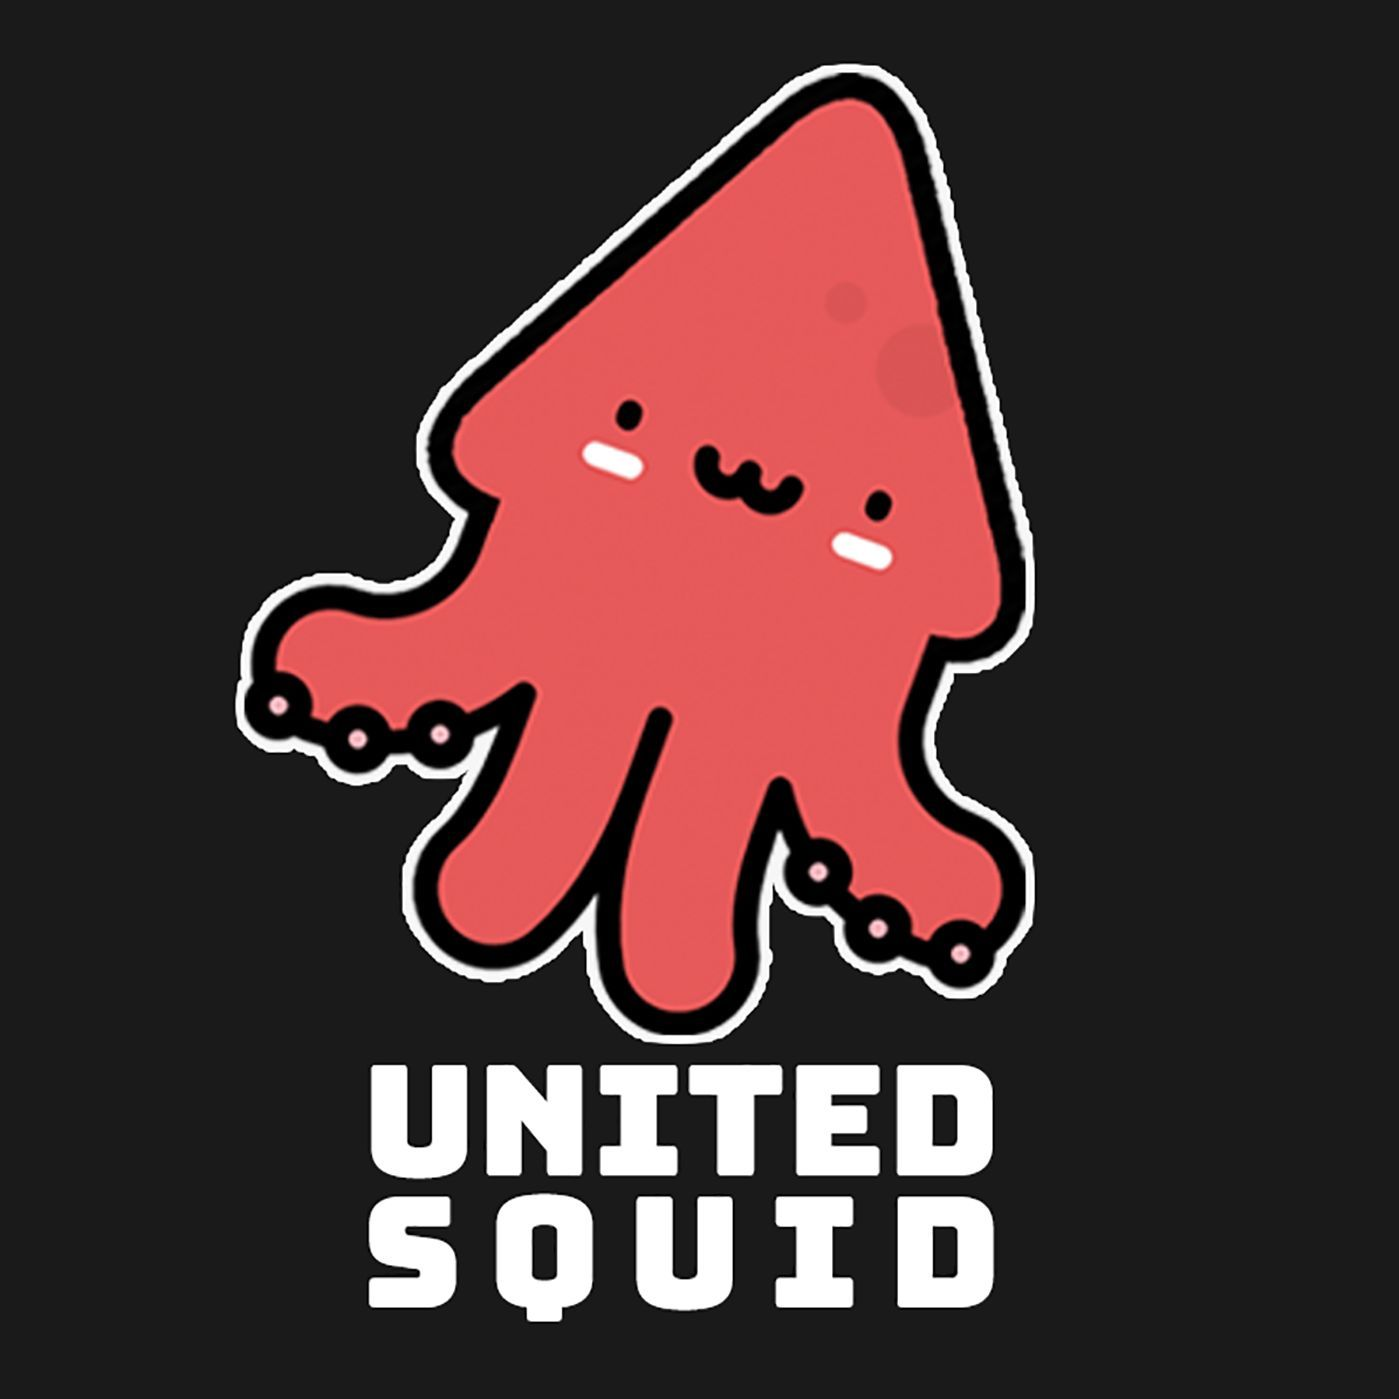 United Squid Podcast #4 - Animal Crossing, Sonic Movie, and Creepy VR Reunion